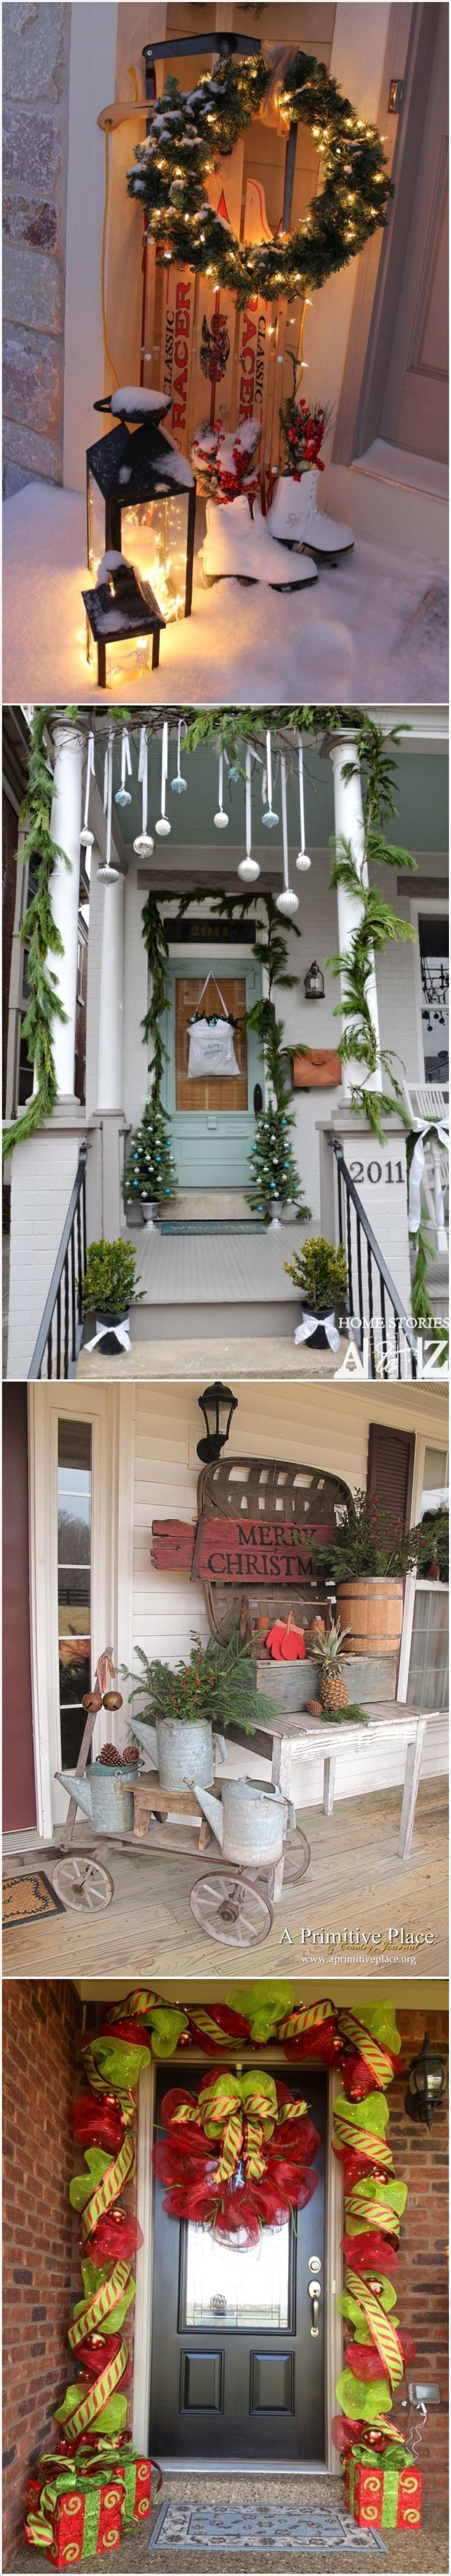 Decorating Porch for Christmas Ideas #christmasporch